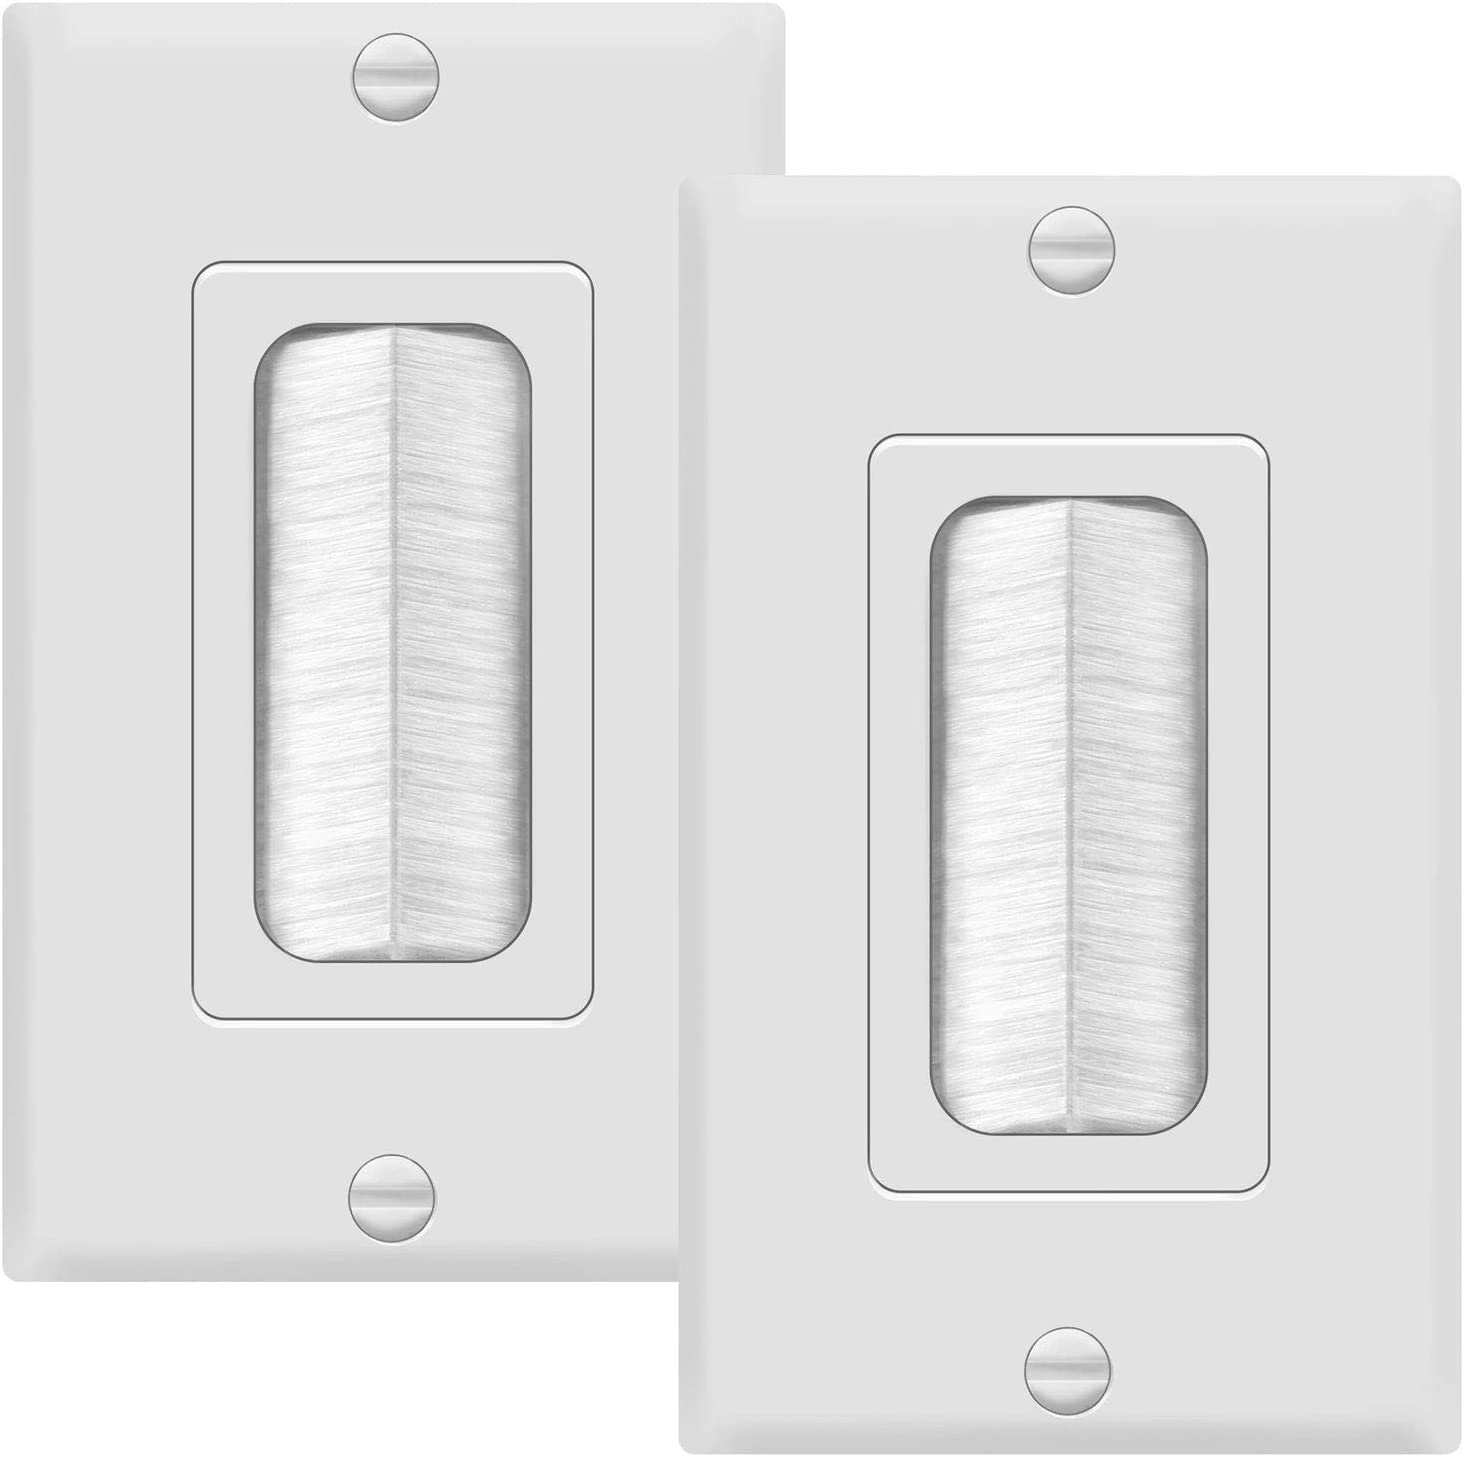 """TOPGREENER Bristled Brush Wall Plate Multimedia Pass-Through Insert with Decorator Wall Plate for Low Voltage Cables, Size 1-Gang 4.50"""" x 2.75"""", Polycarbonate Thermoplastic, TG8891-2PCS, White 2 Pack"""